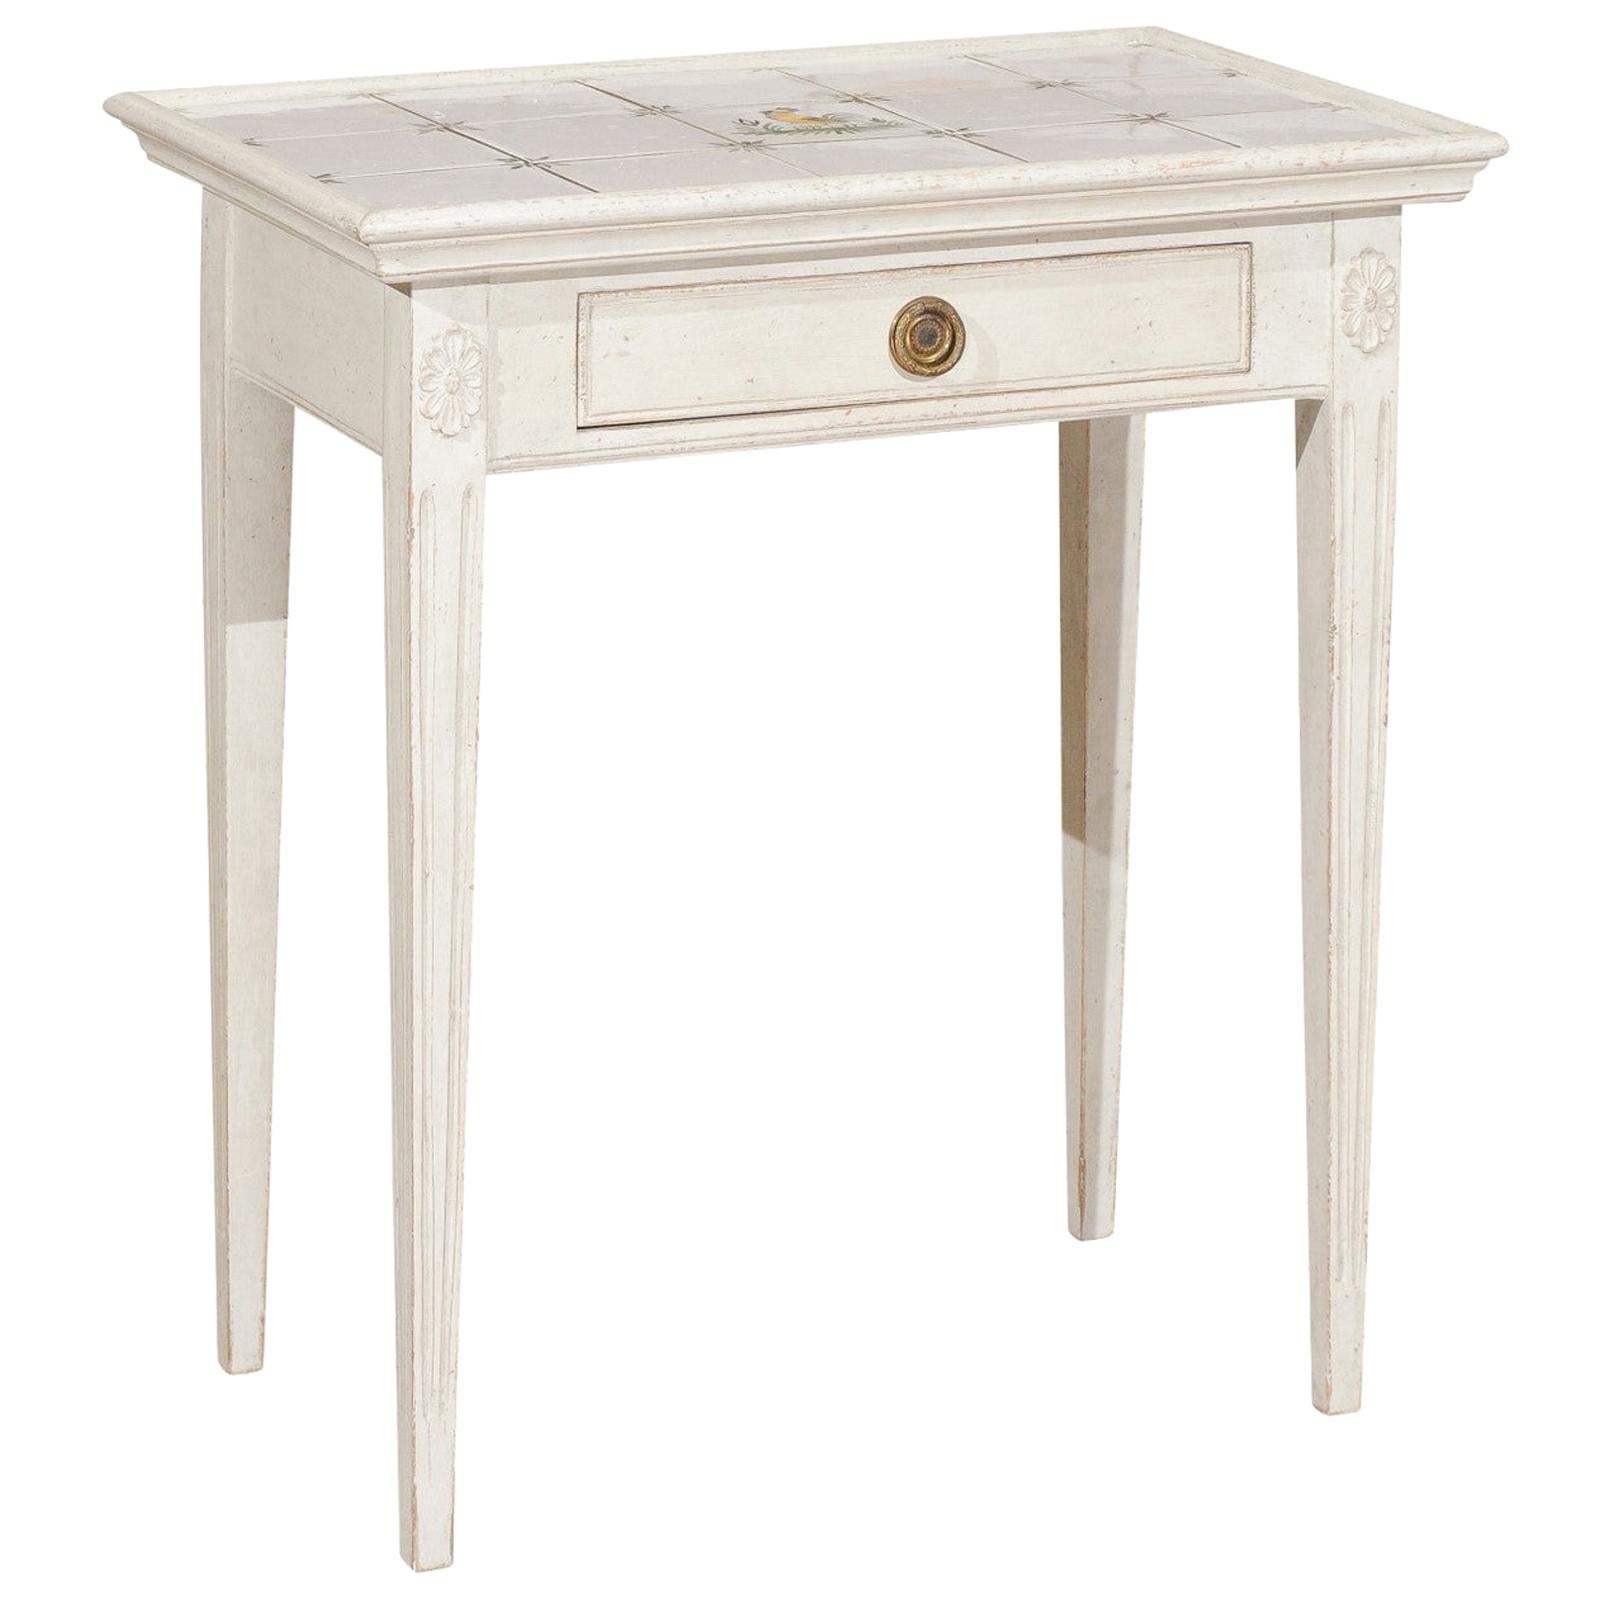 Danish Painted Wood Side Table with Tile Top, Rooster Motif and Single Drawer